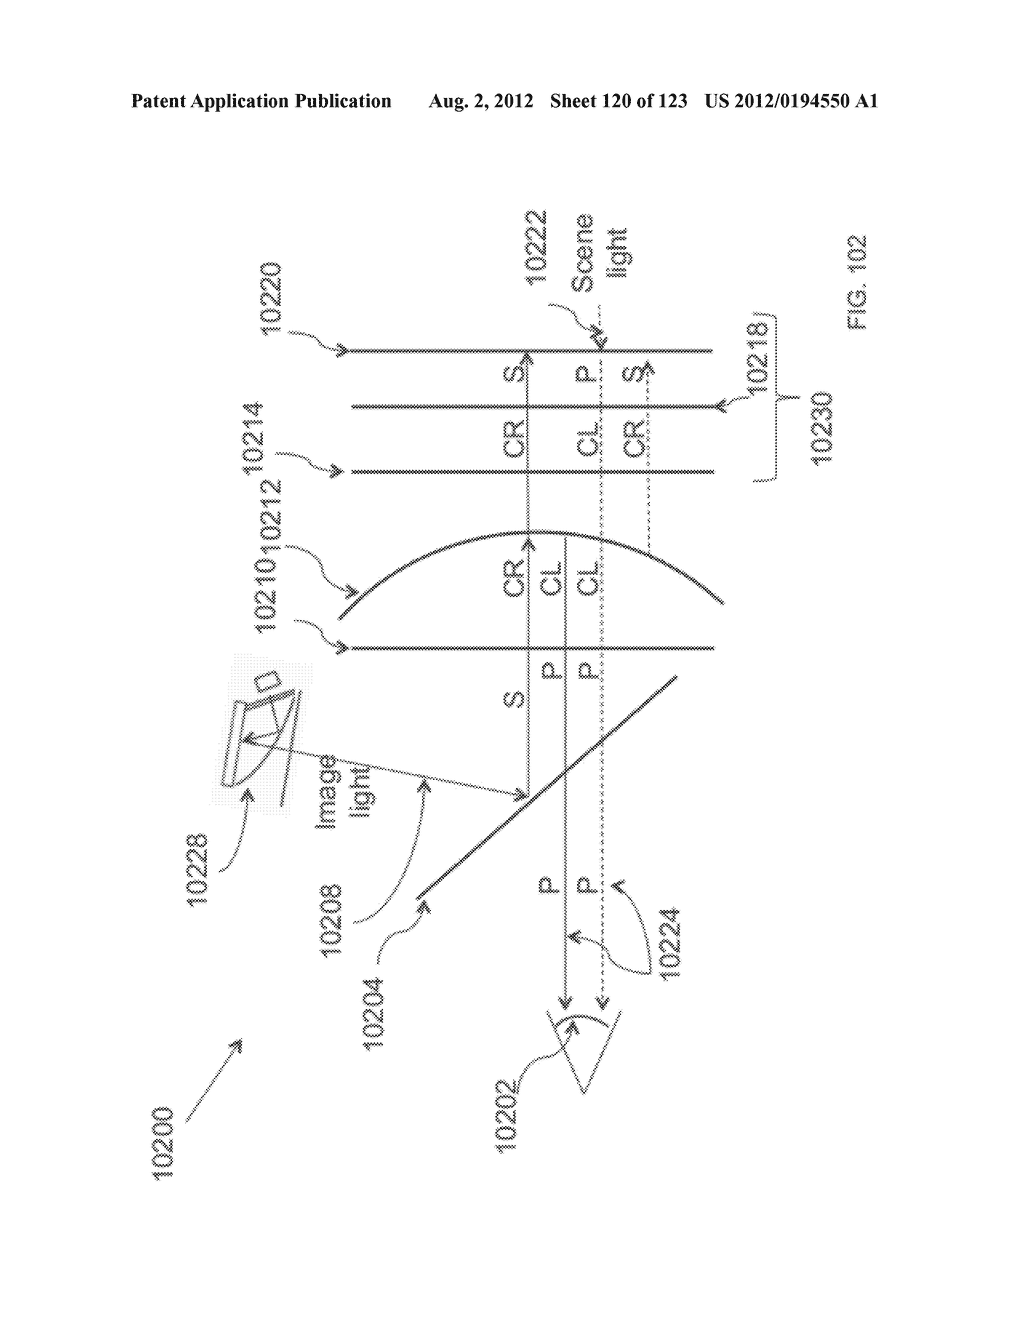 SENSOR-BASED COMMAND AND CONTROL OF EXTERNAL DEVICES WITH FEEDBACK FROM     THE EXTERNAL DEVICE TO THE AR GLASSES - diagram, schematic, and image 121